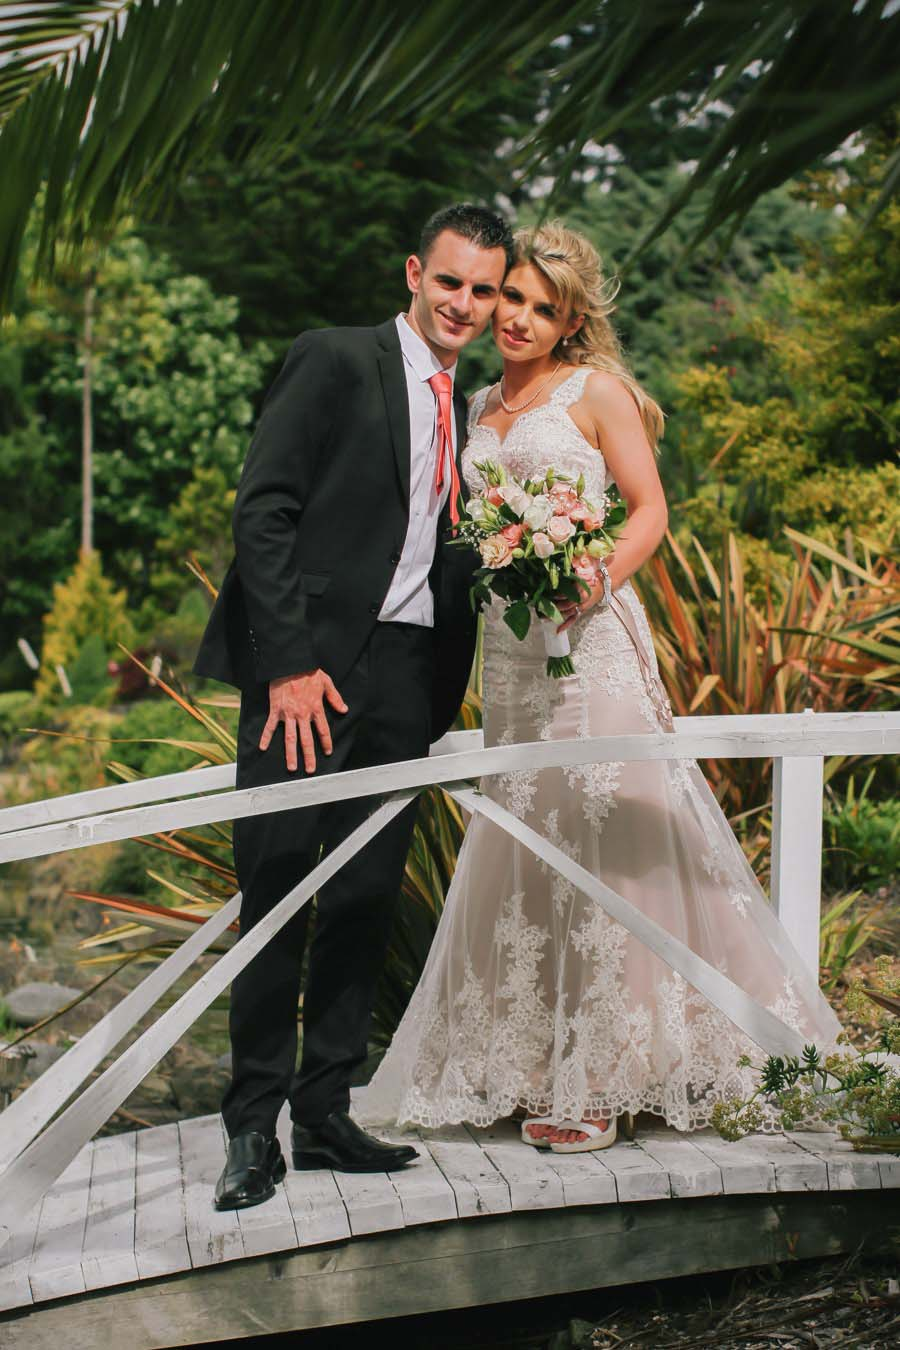 silverdale_wedding_nz_photographer-183